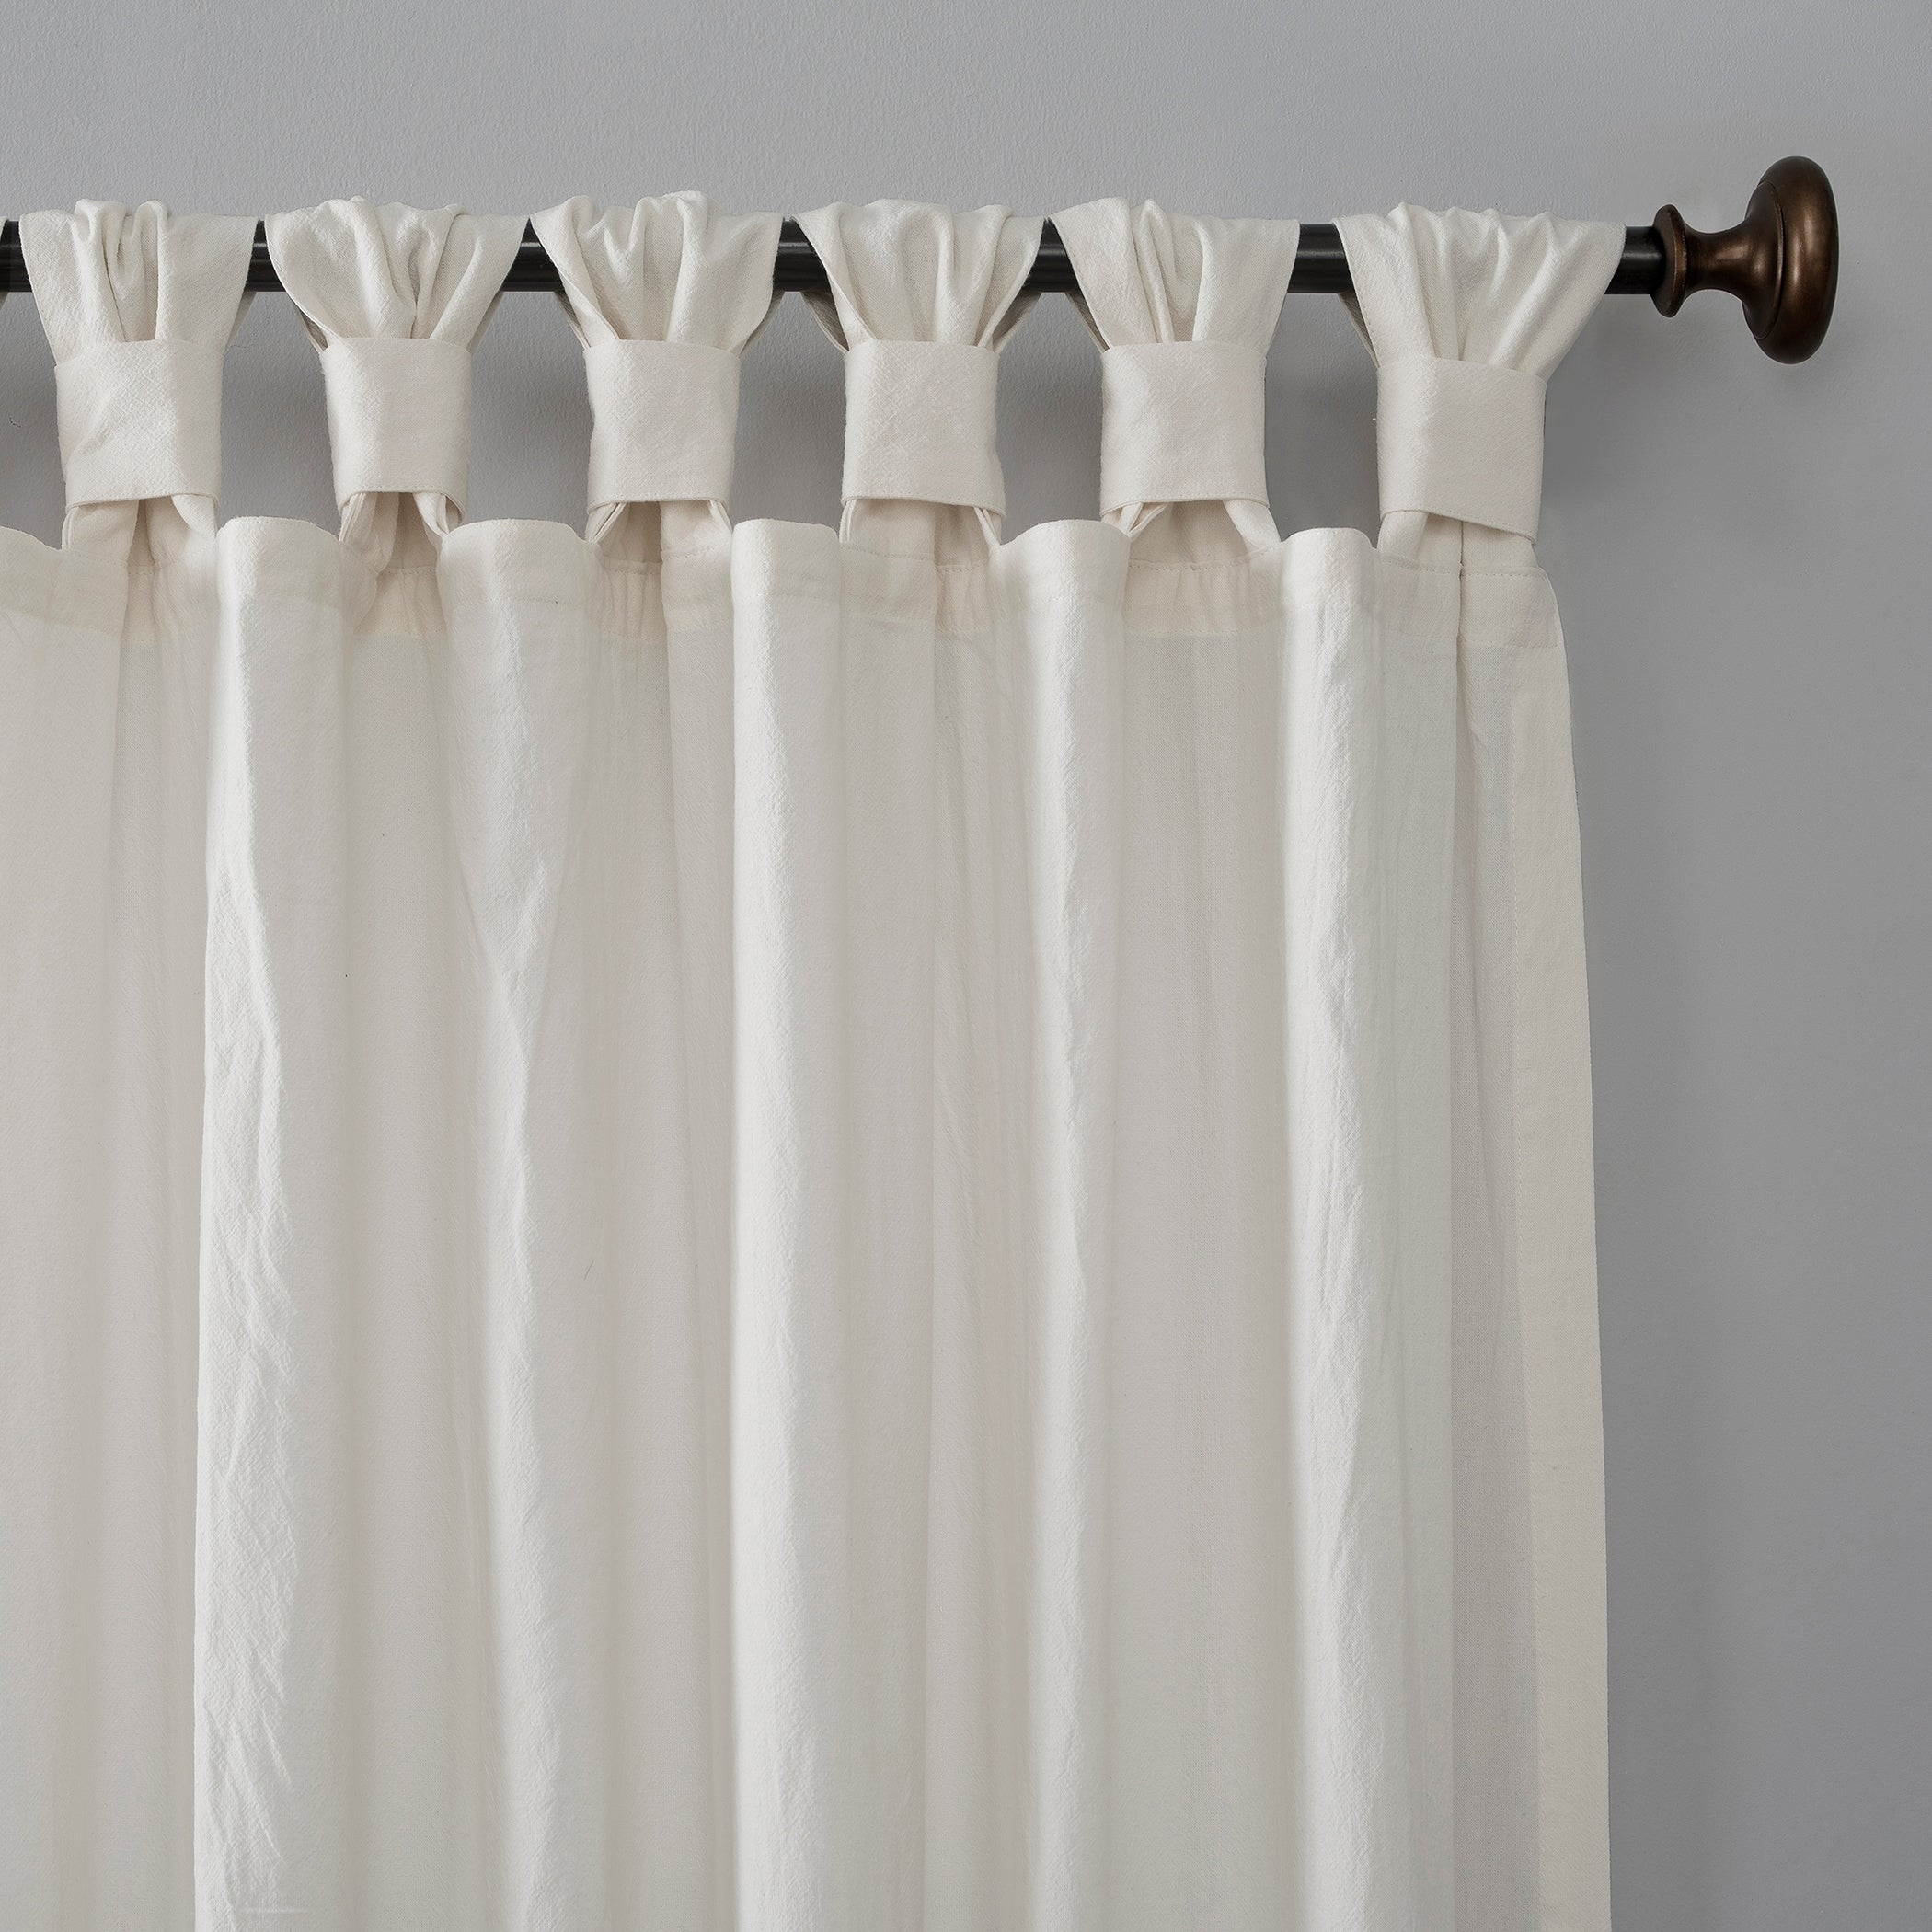 Archaeo Washed Cotton Twist Tab Single Curtain Panel Intended For Archaeo Washed Cotton Twist Tab Single Curtain Panels (View 5 of 20)